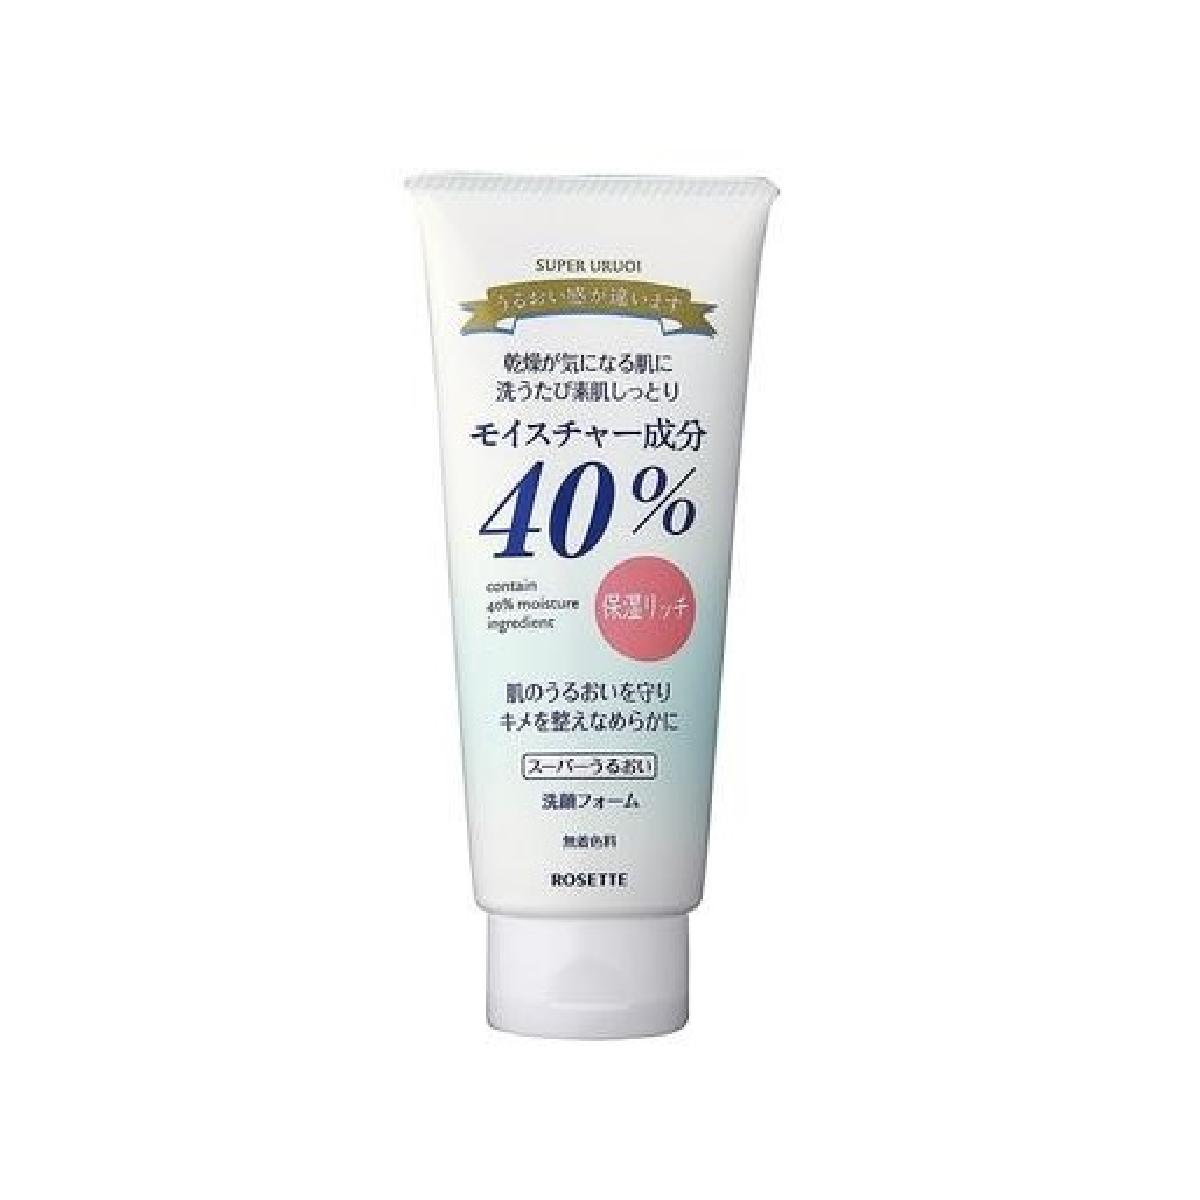 40% Hyaluronic Acid Moisturizing Cleansing Foam 168g